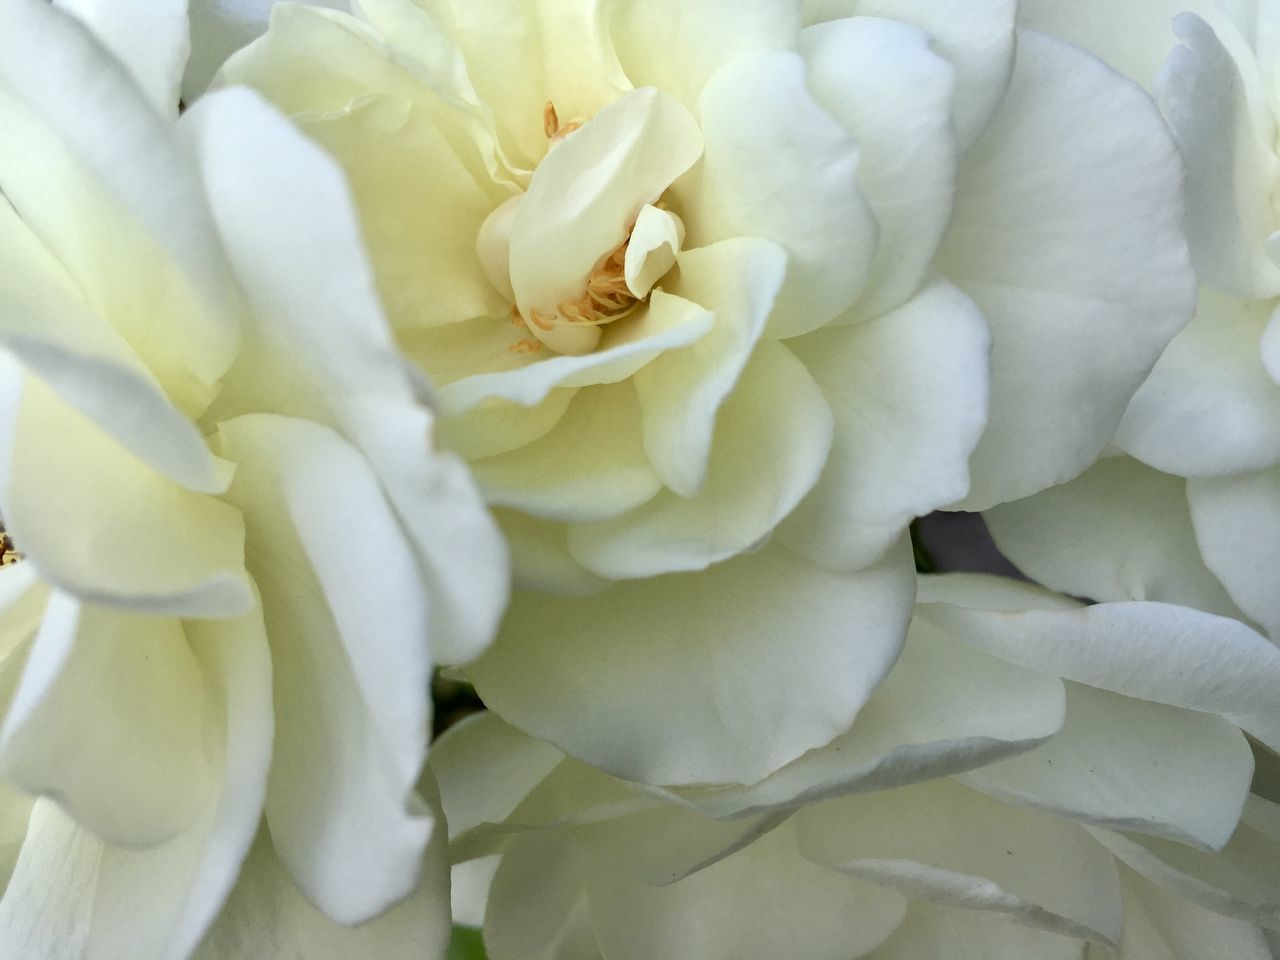 Backgrounds Beauty In Nature Blossom Botany Close-up Exotic Exoticism Extreme Close-up Flower Flower Head Fragility Freshness Full Frame Growth In Bloom Macro Natural Pattern Nature Petal Plant Rose - Flower Single Flower Softness Springtime White Color